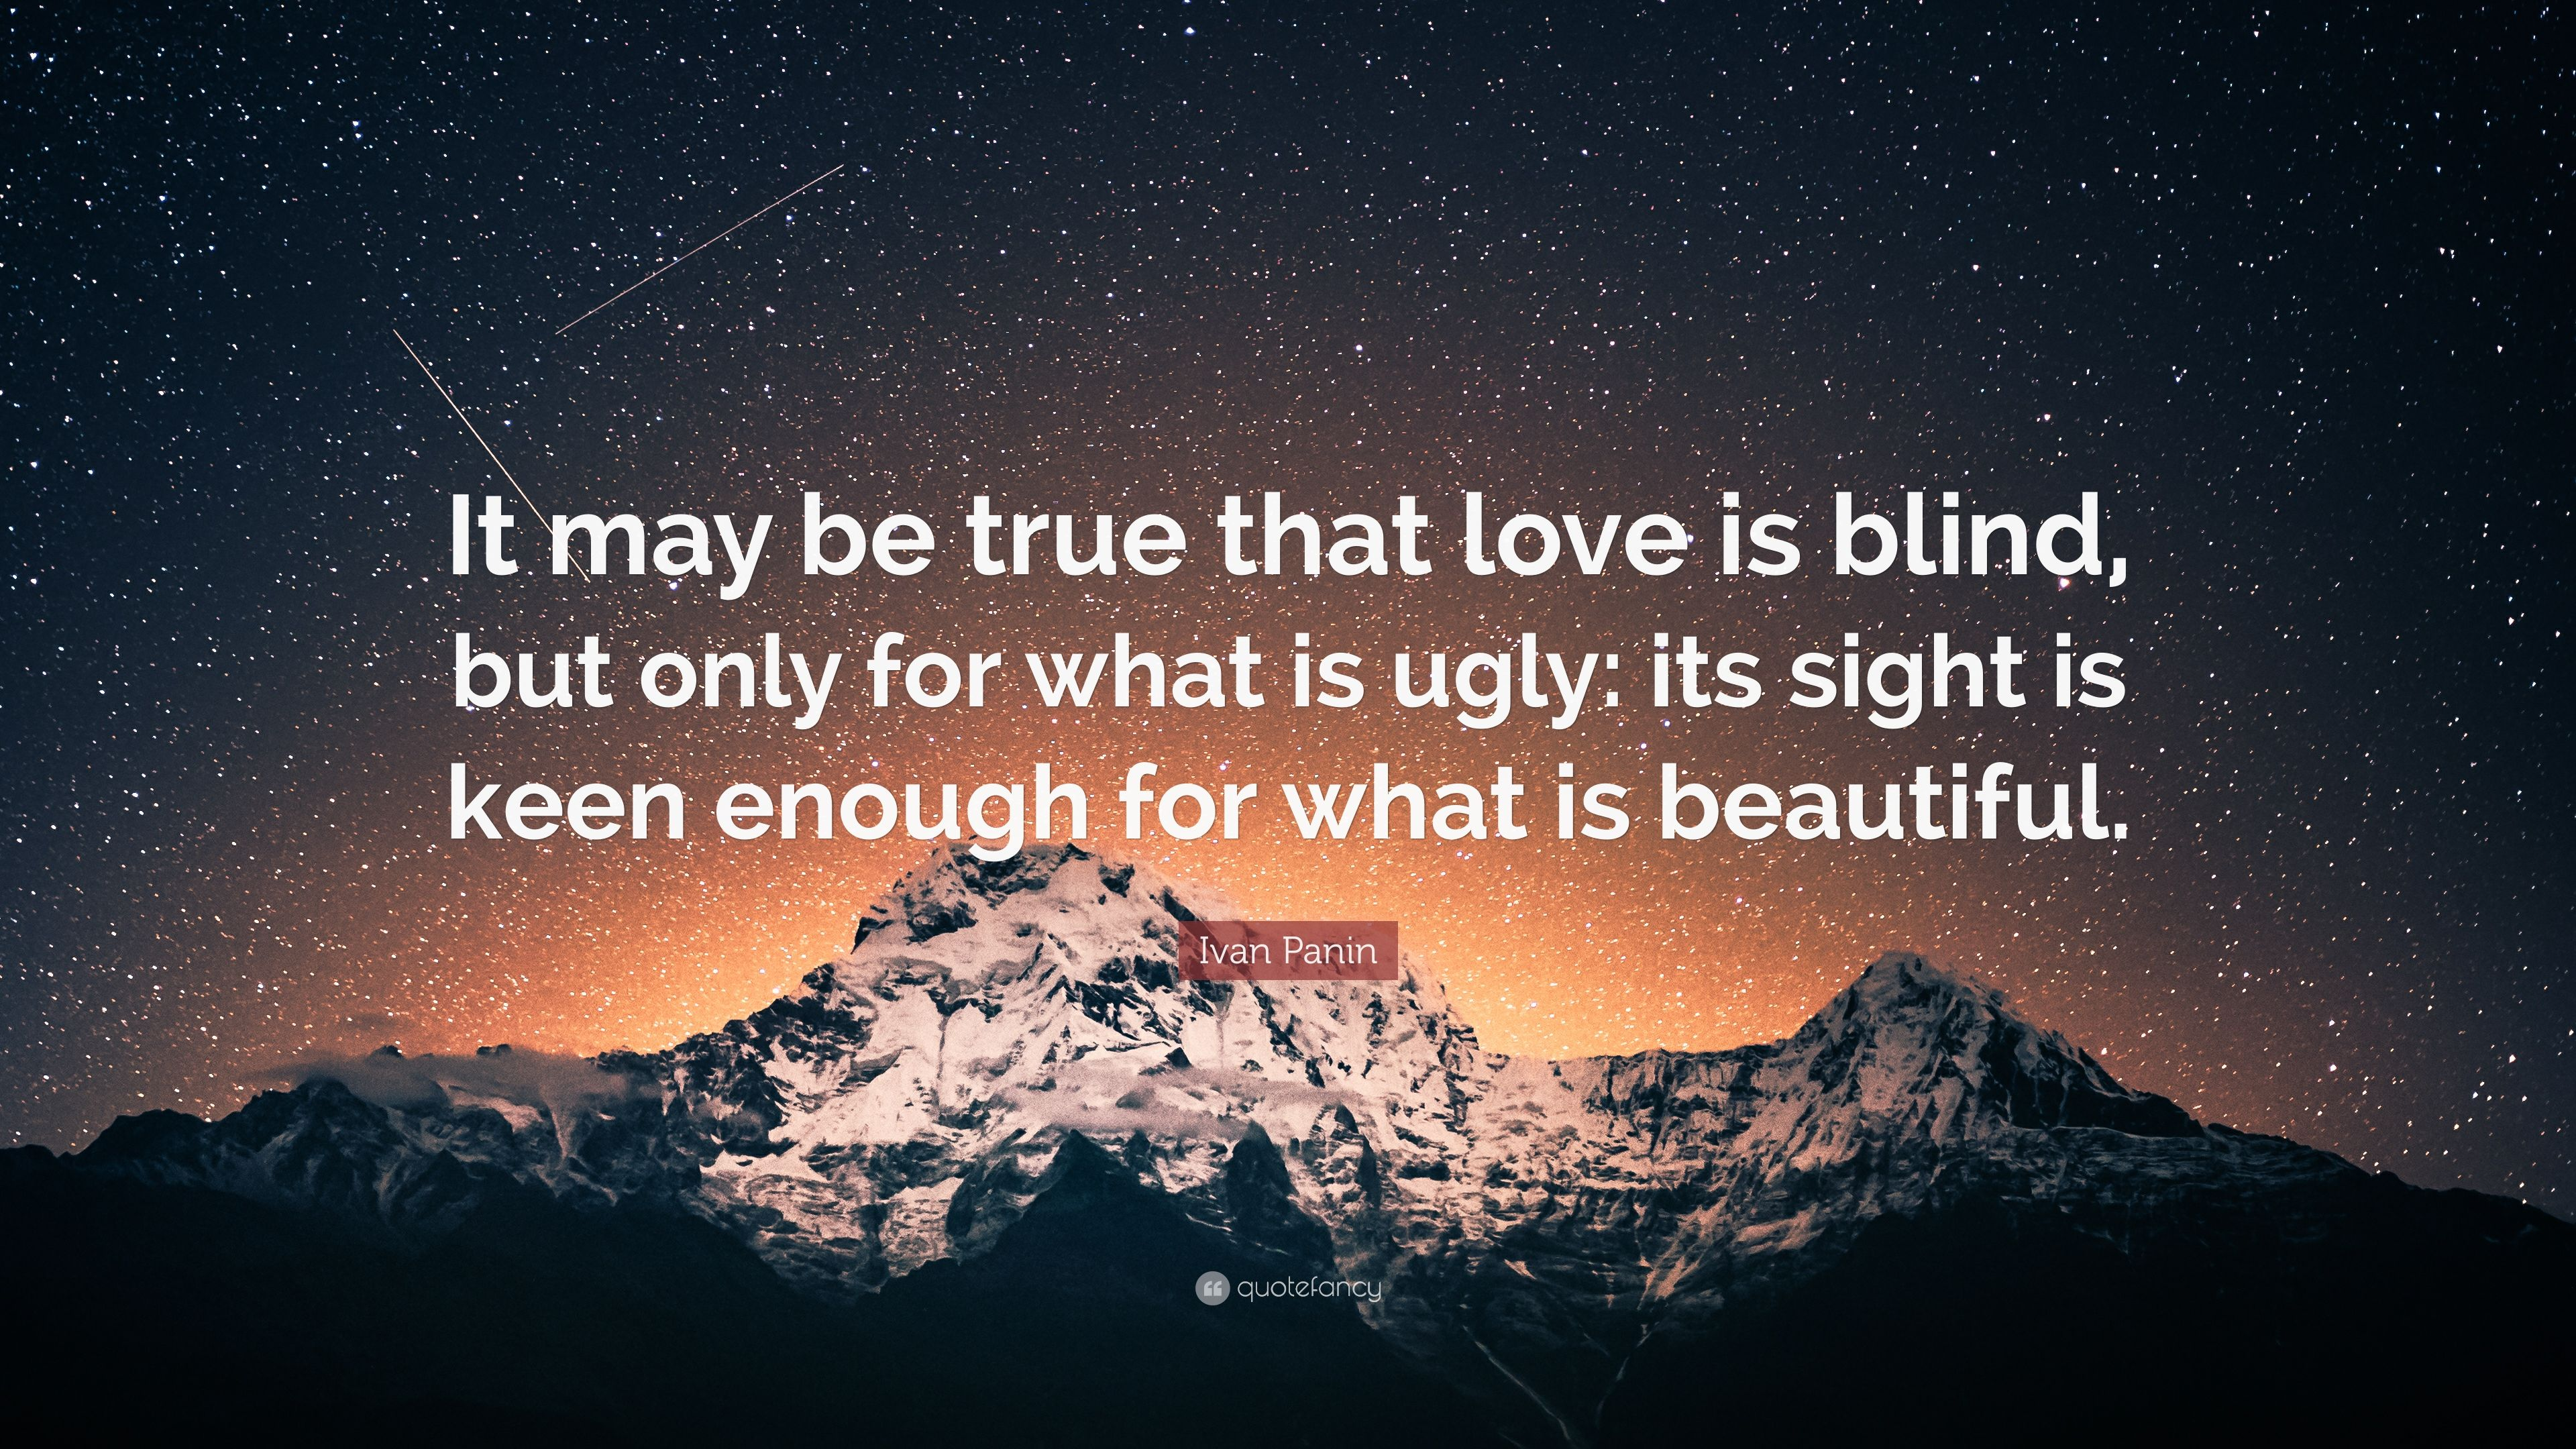 Ivan Panin Quote: U201cIt May Be True That Love Is Blind, But Only